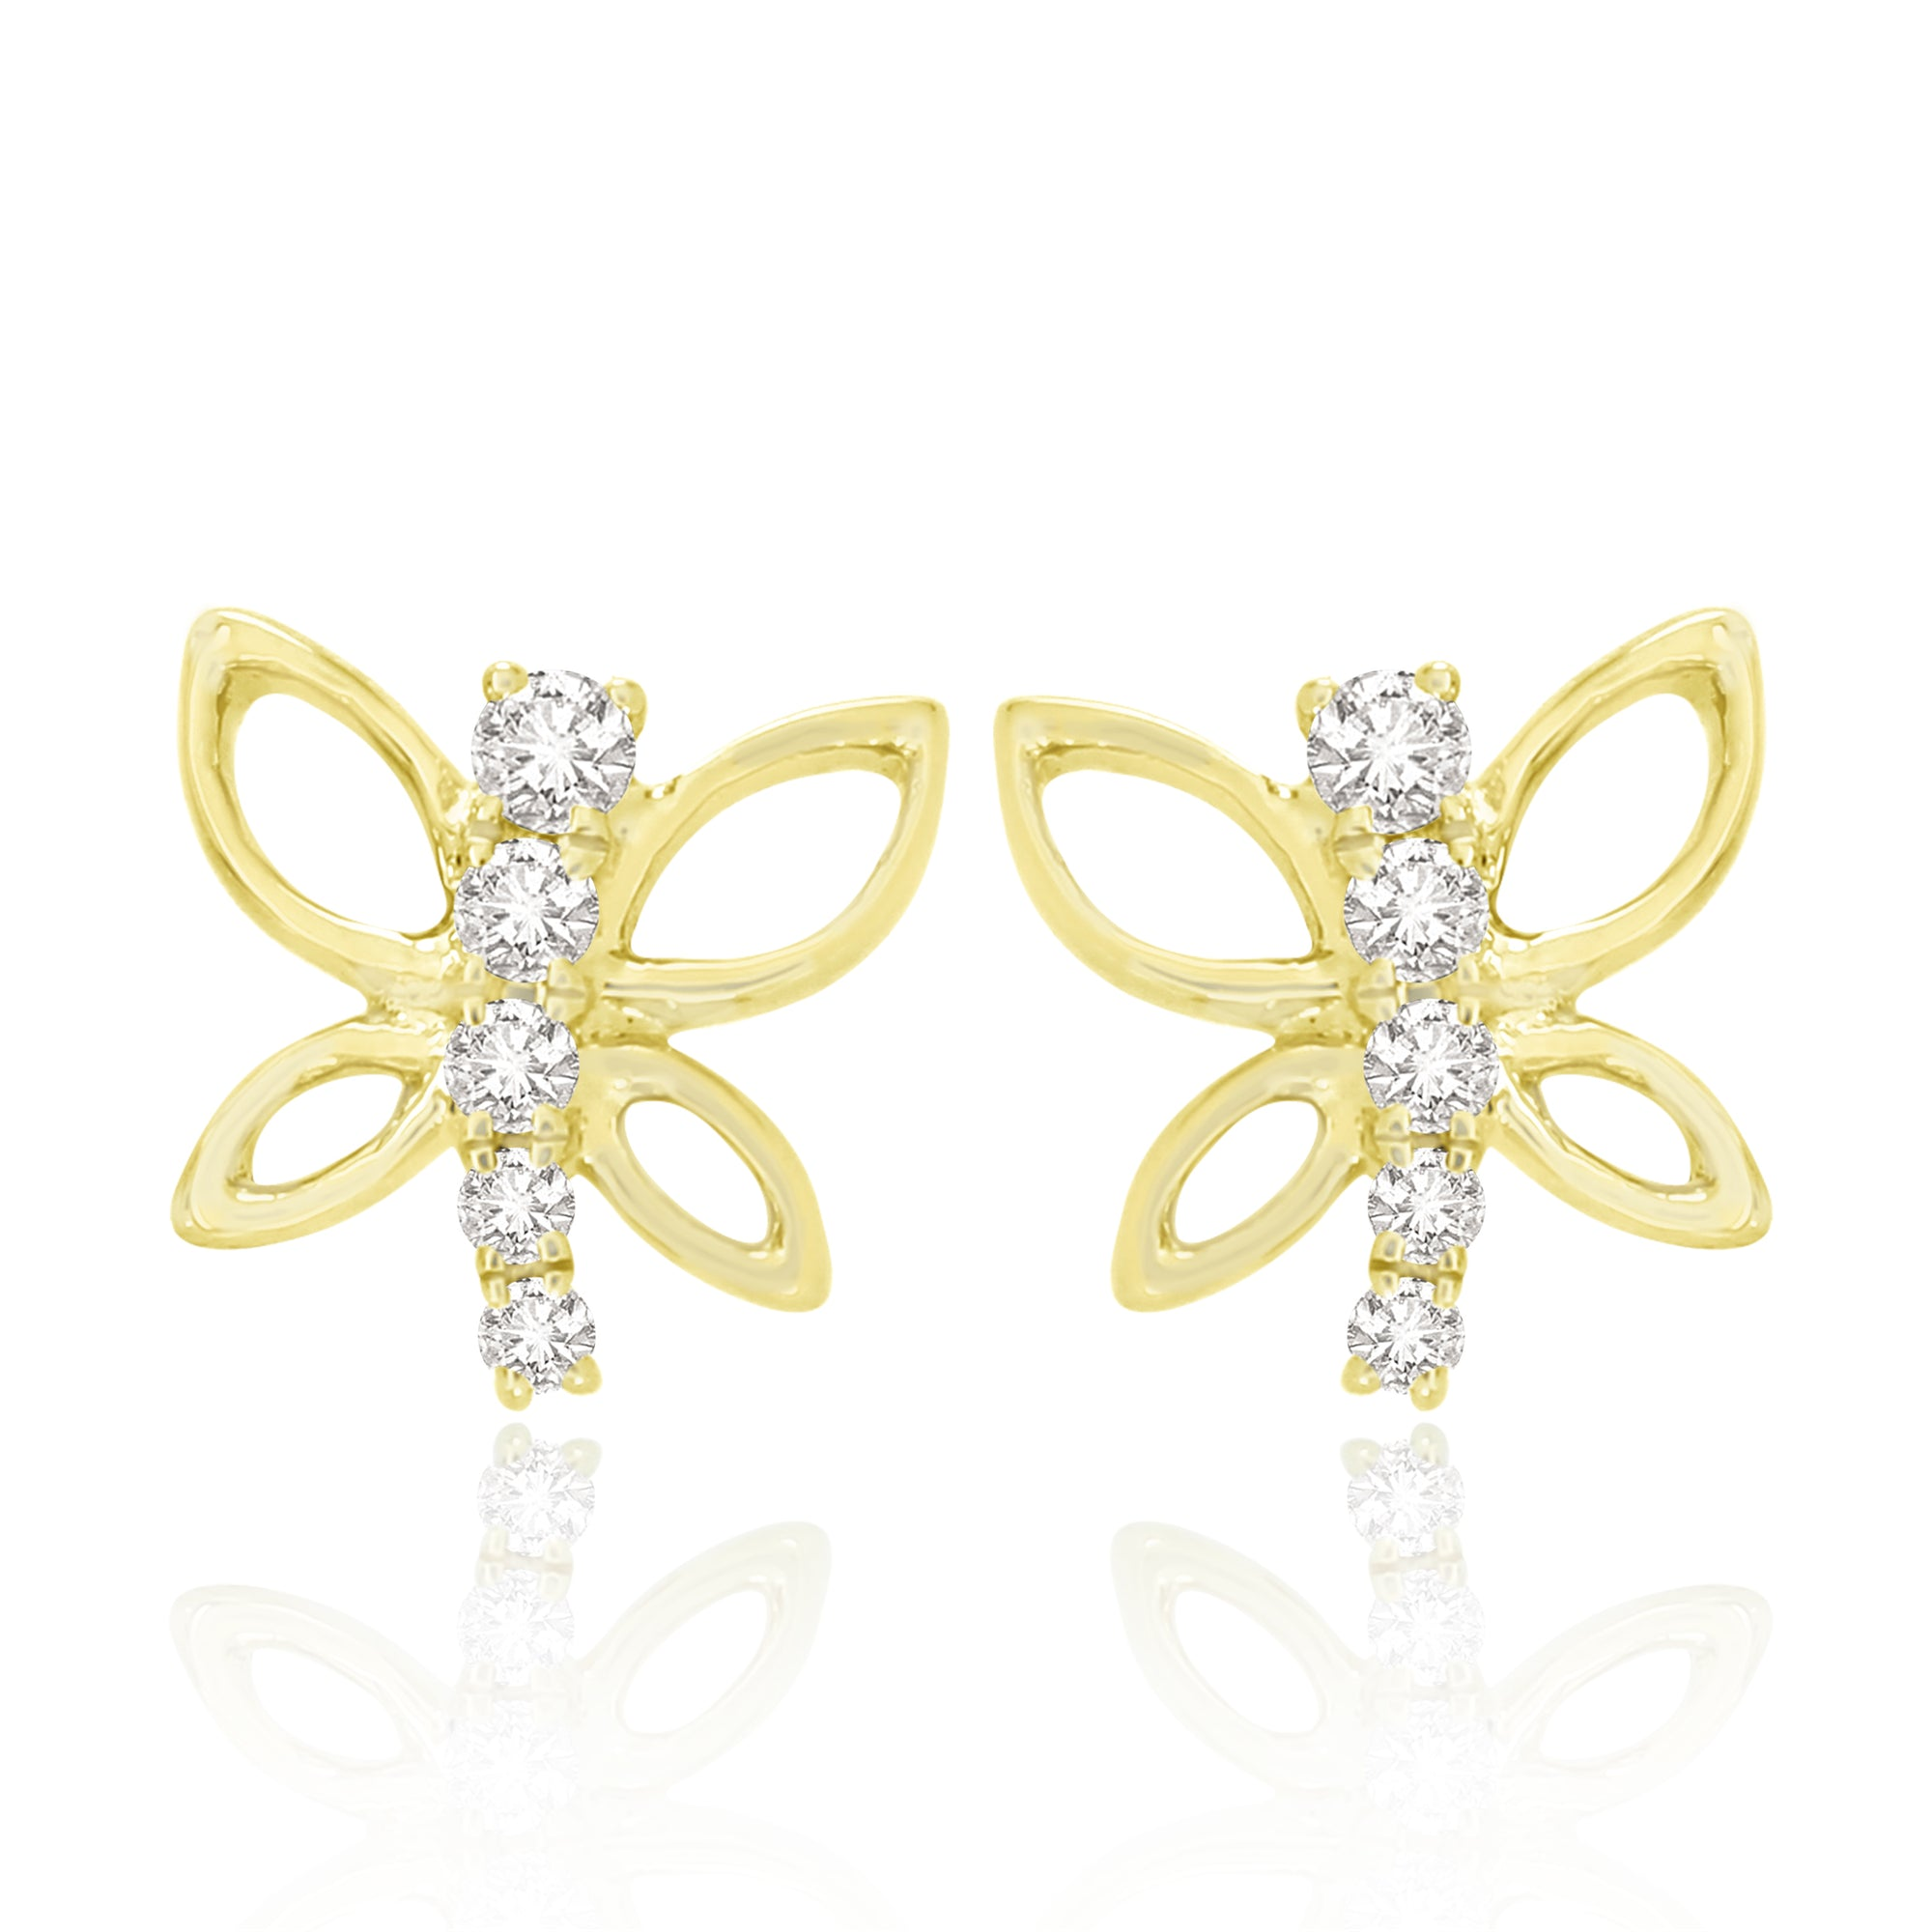 Sparkling Papillon Earrings